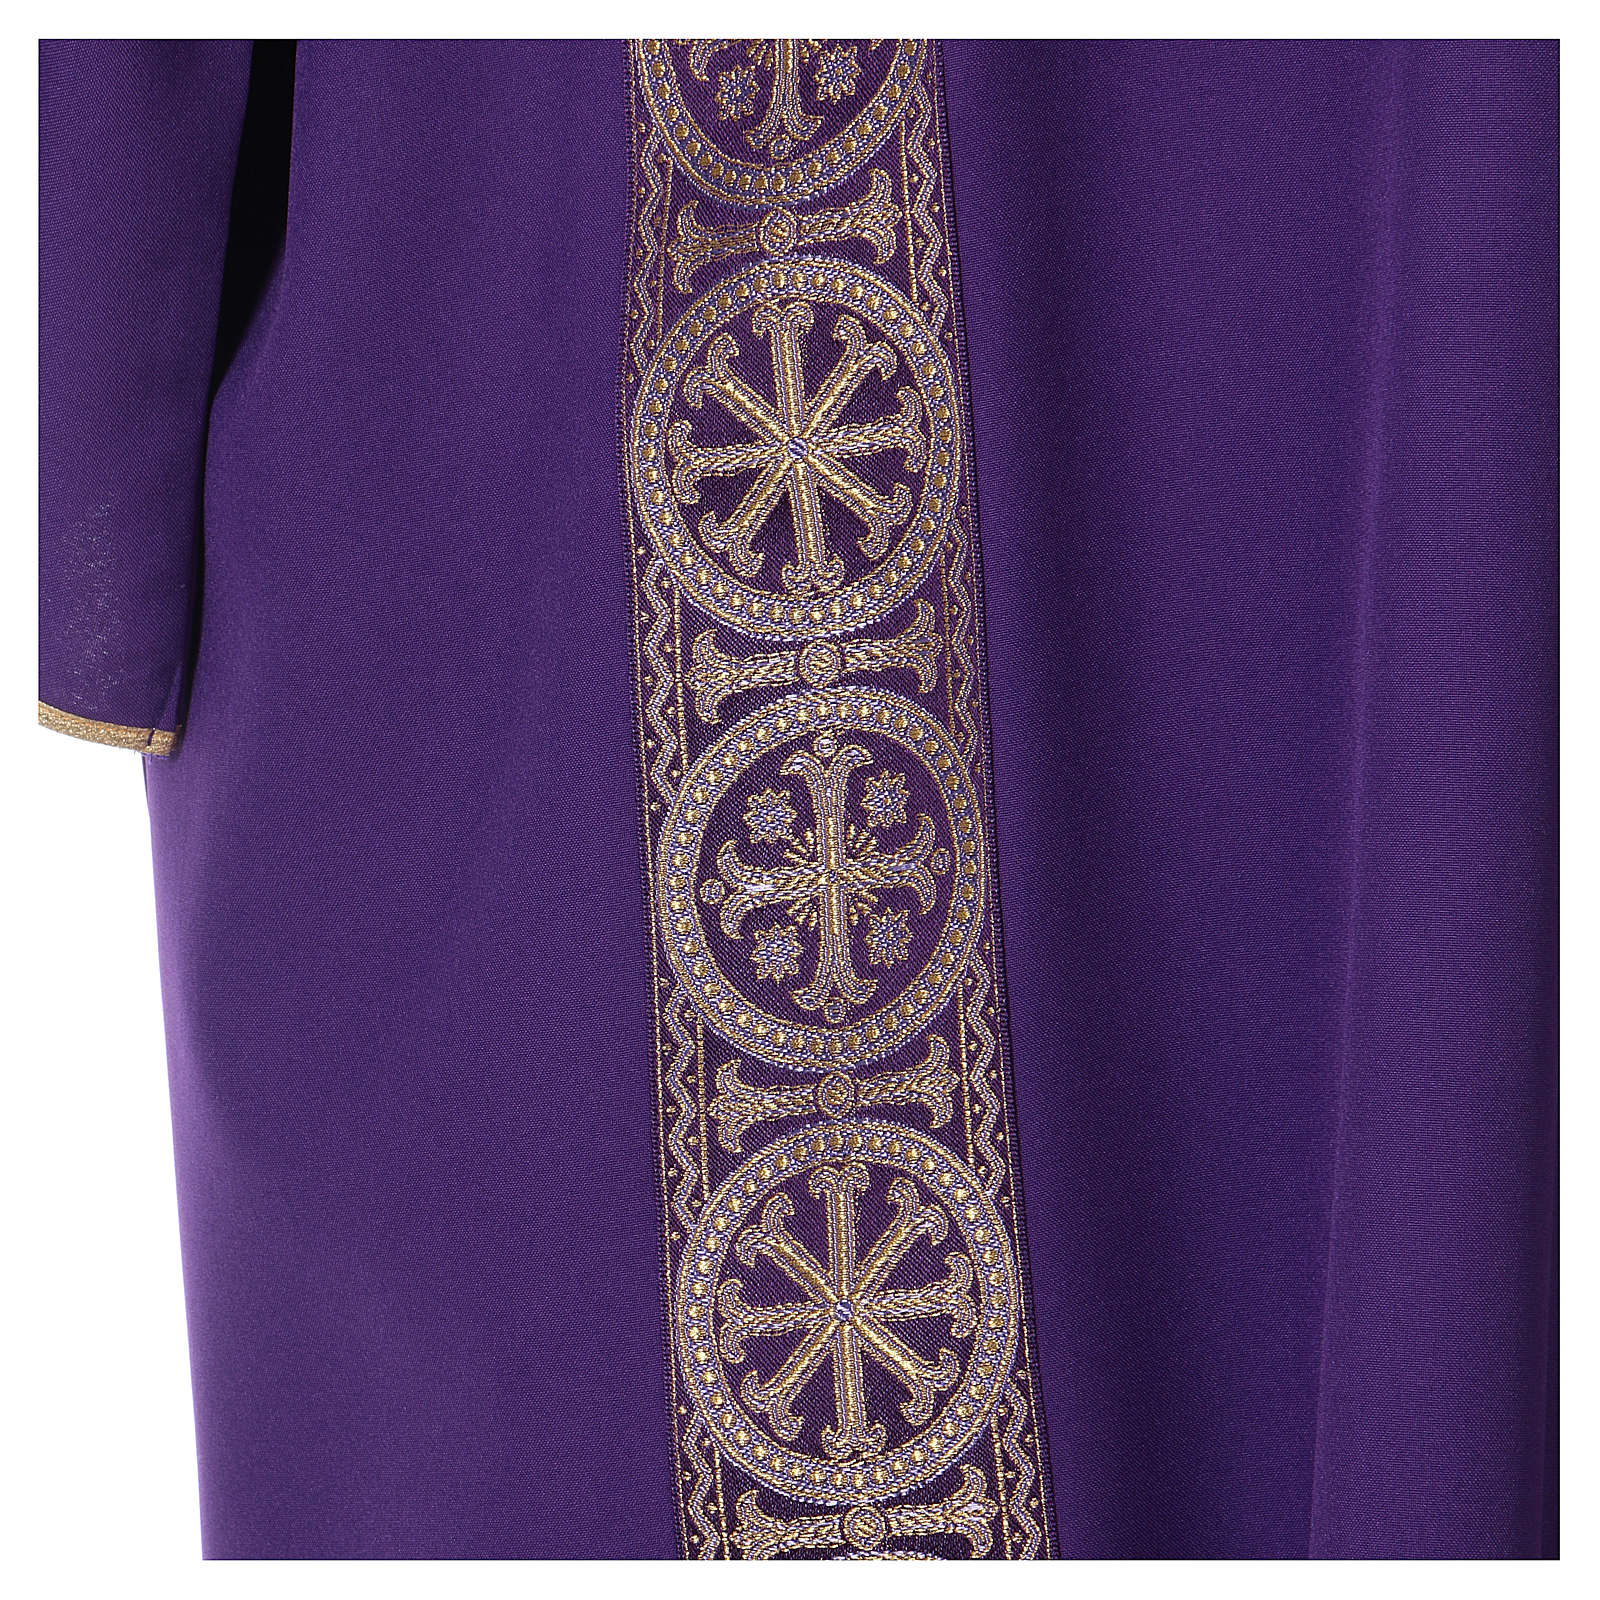 Eucharistic Dalmatic with decoration trim on front and back made in Vatican fabric 100% polyester 4